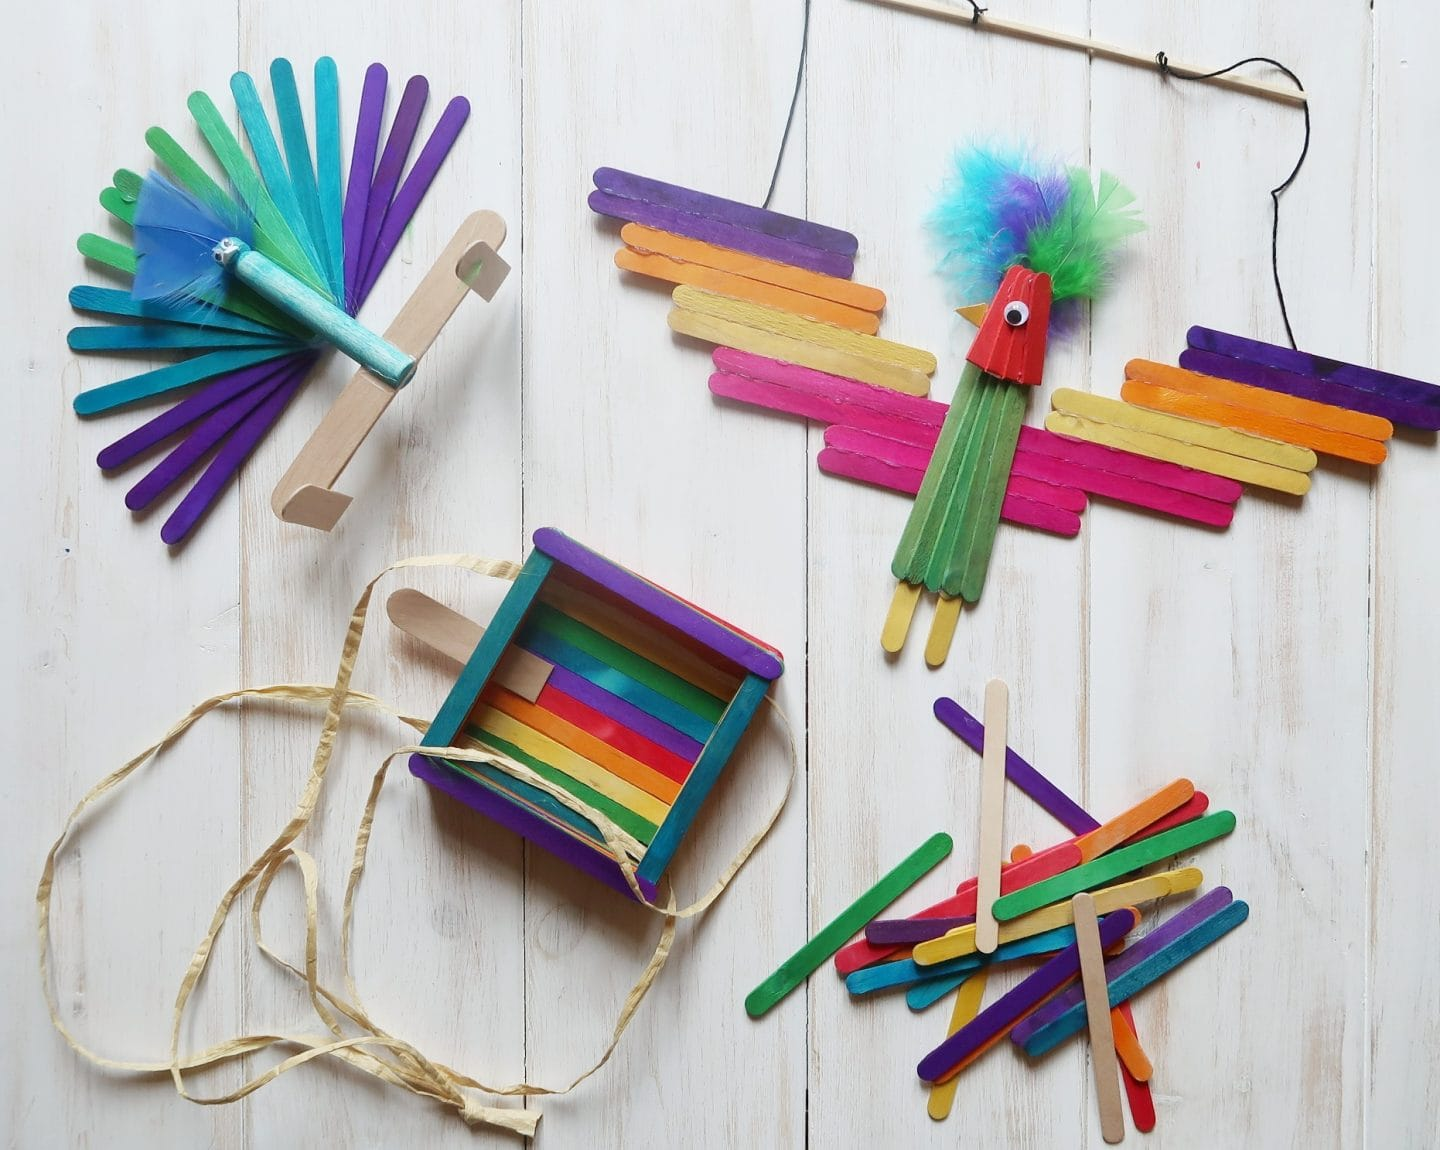 Rainbow Lolly stick crafts - birds